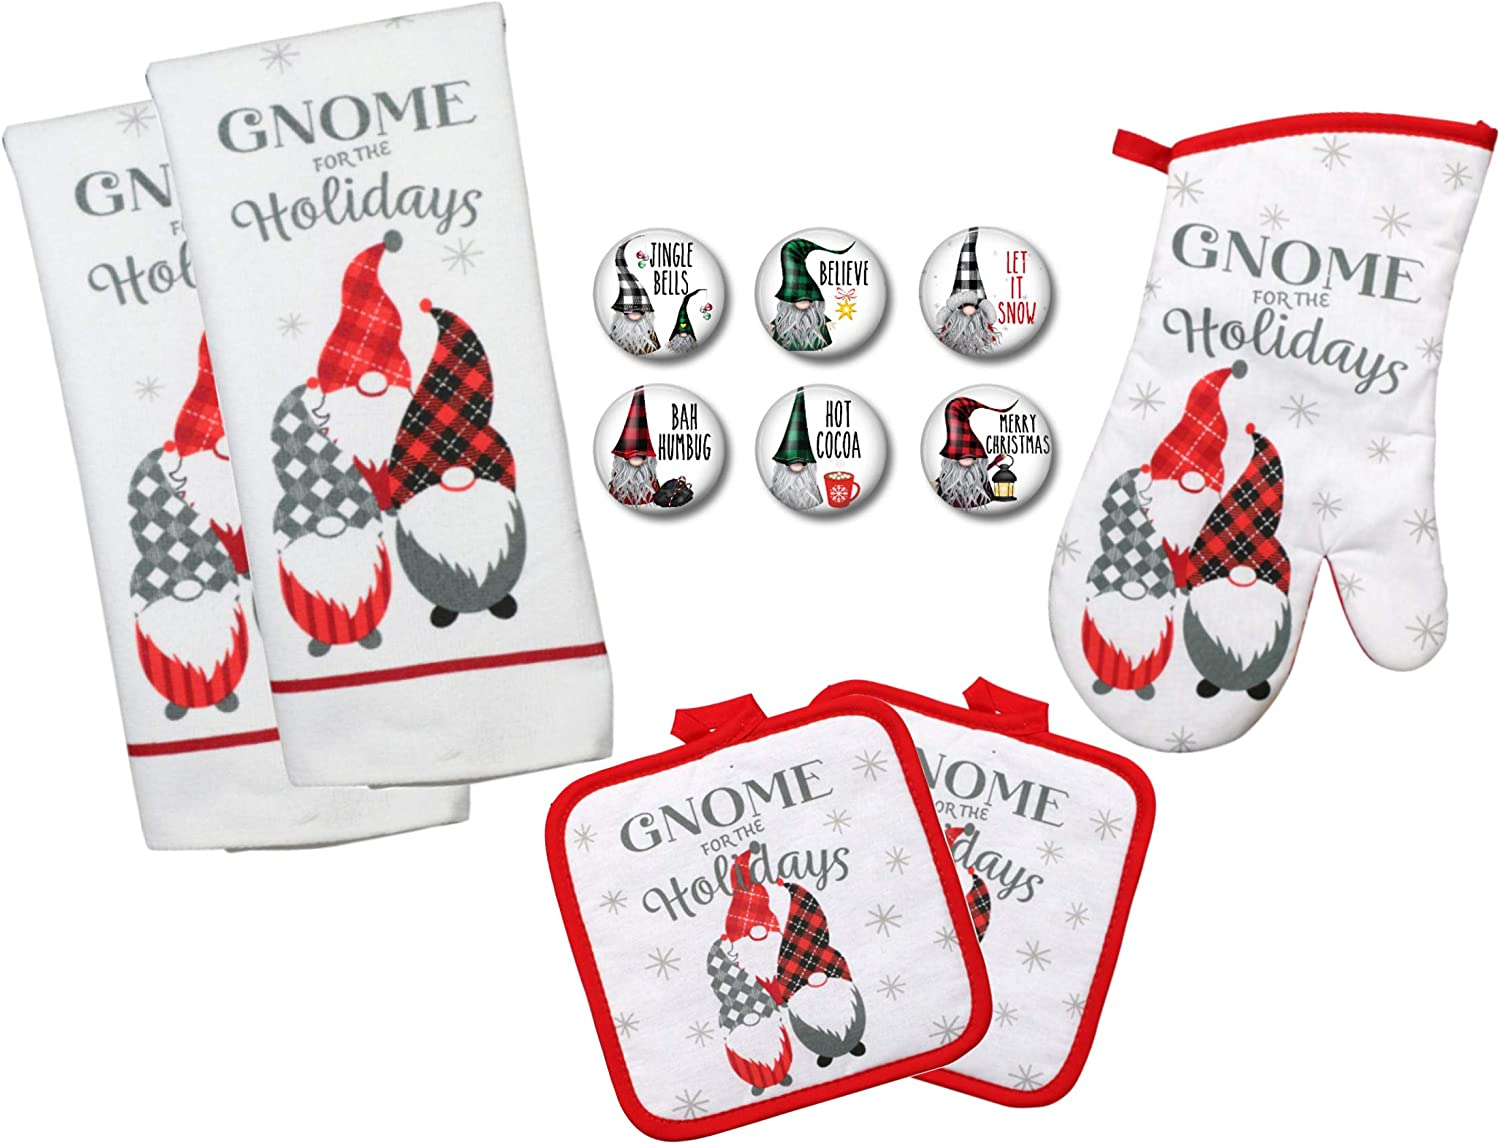 Farmhouse Daisy Designs Christmas Kitchen Decor Gnomes Towel Set with Pot Holders Oven Mitt and Set of 6 Refrigerator Magnets Set - (Gnome for The Holidays)